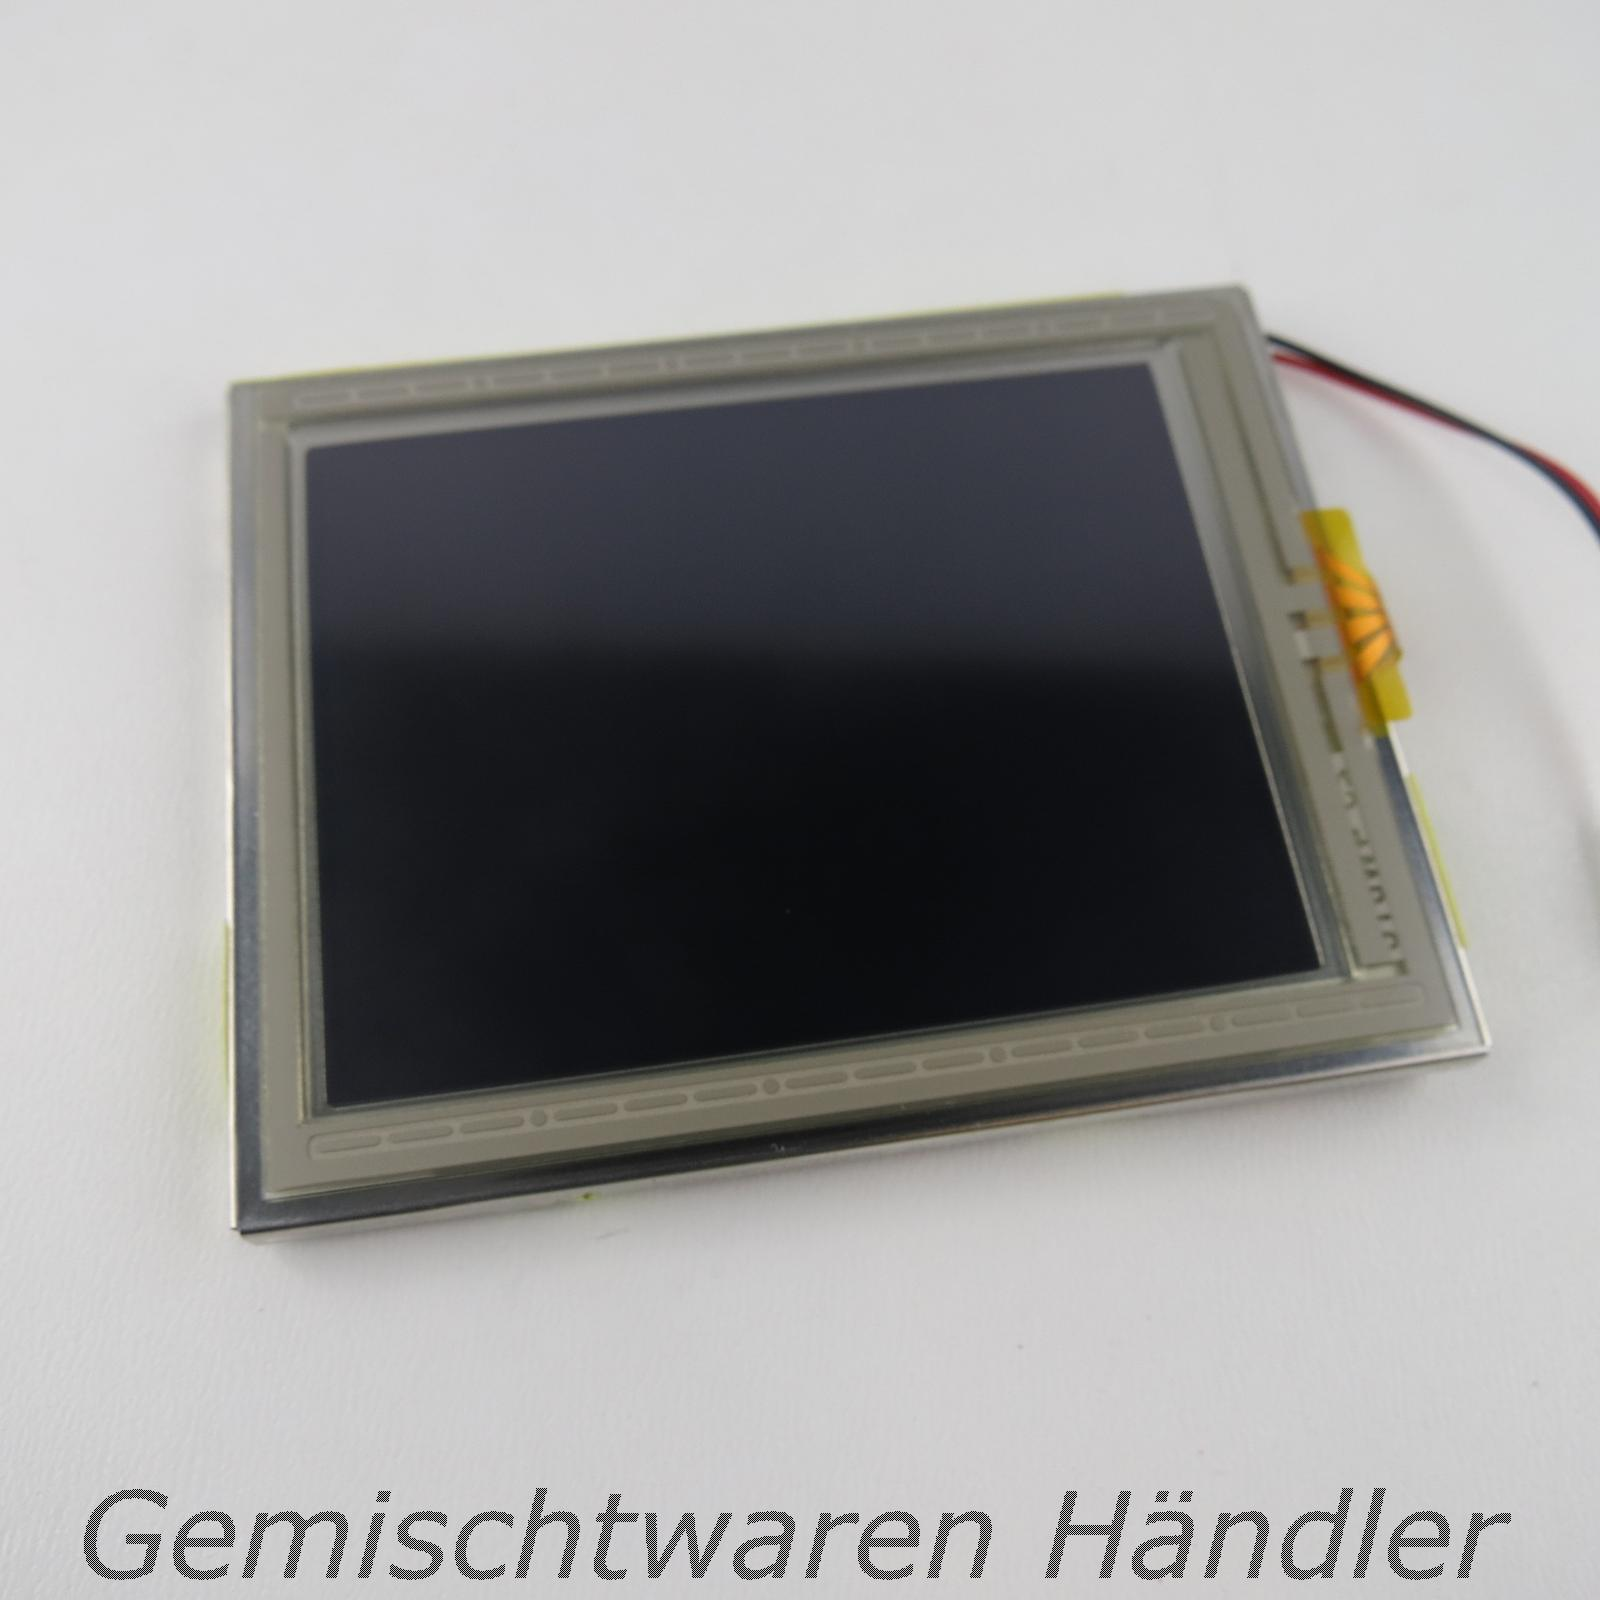 NEU LCD Grafik Display mit Touch Panel LED Beleuchtung Modul Arduino AVR PIC